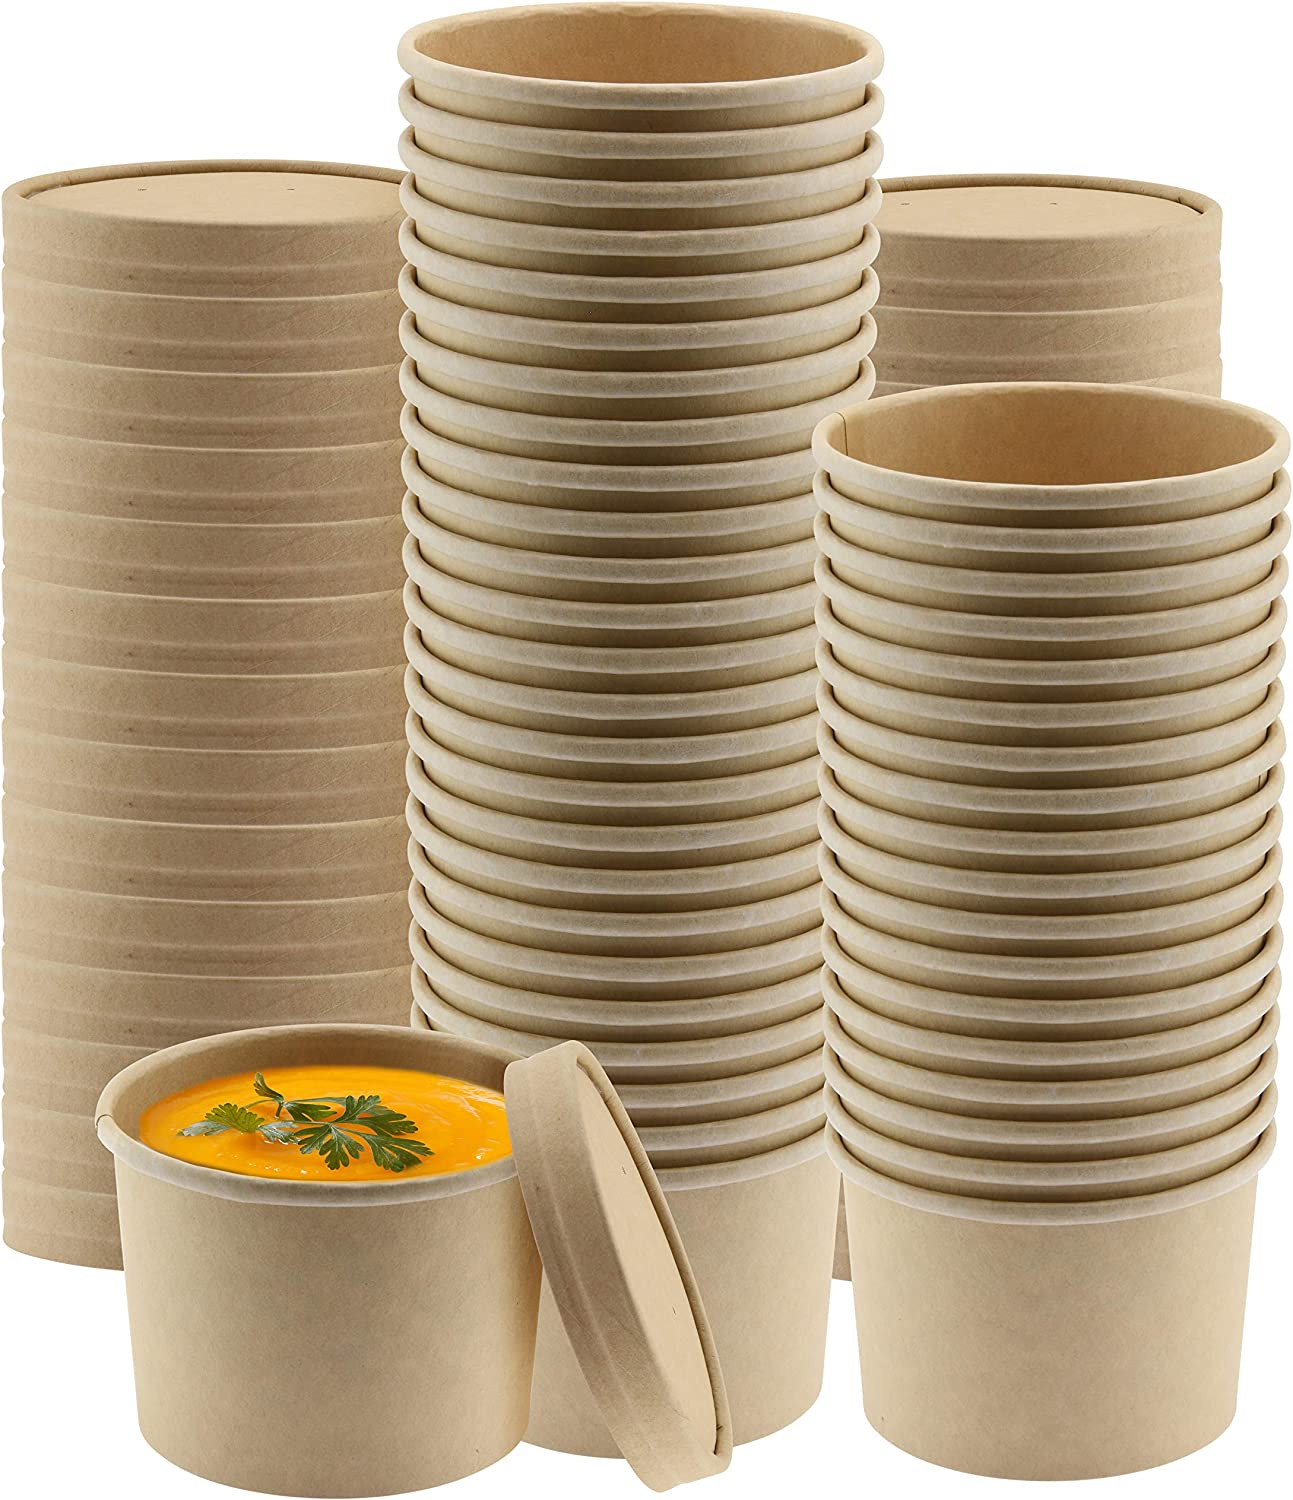 NYHI Kraft Paper Soup Storage Containers With Lids | 8 Ounce Insulated Take Out Disposable Food Storage Container Cups For Hot & Cold Foods | Eco Friendly To Go Soup Bowls With Vented Lid | 50 Pack